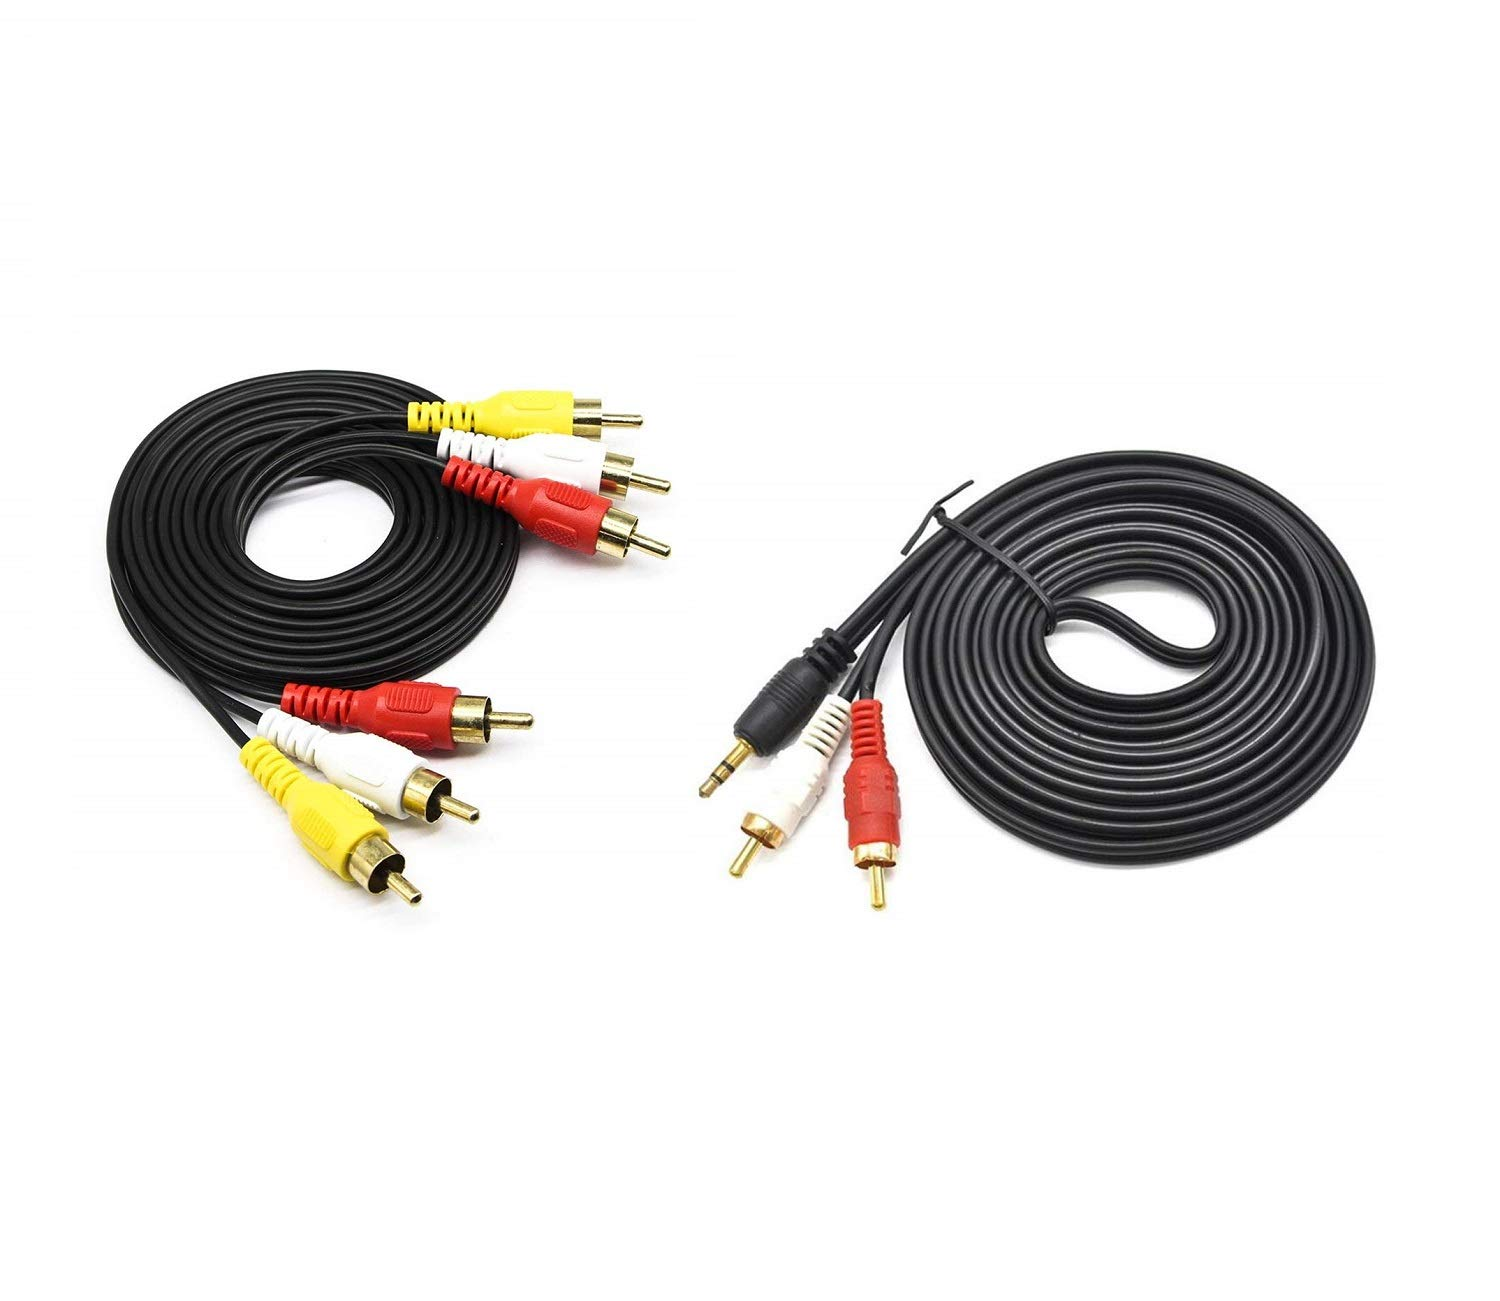 Combo 3.5mm Male to 2 RCA Male and 3RCA Male to 3RCA Male Stereo Audio Video Extension Cable pack of 2